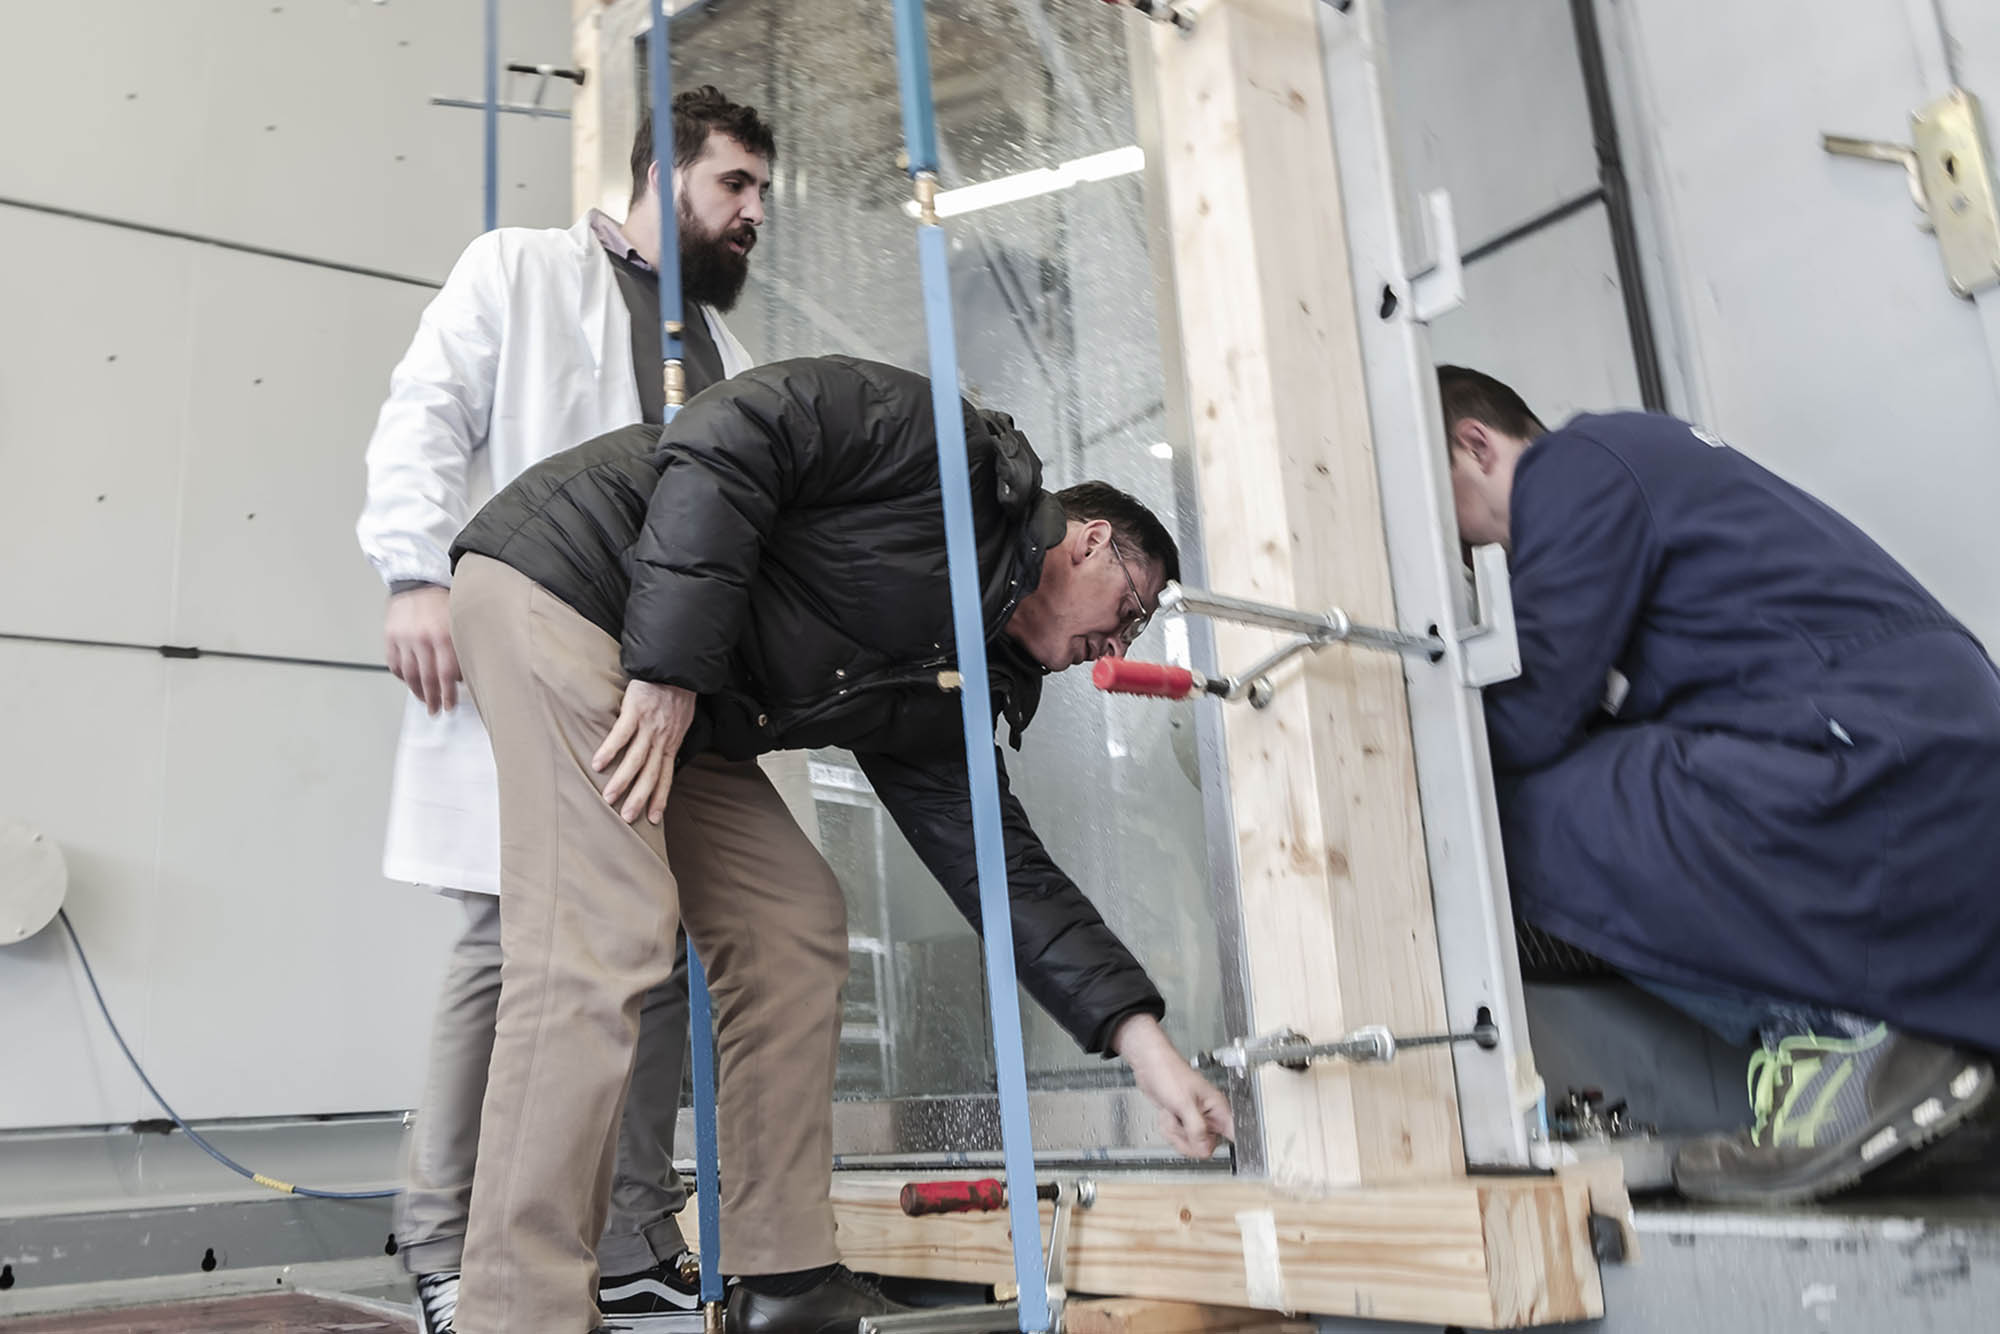 Brombal technicians working on a glass in the testing laboratory